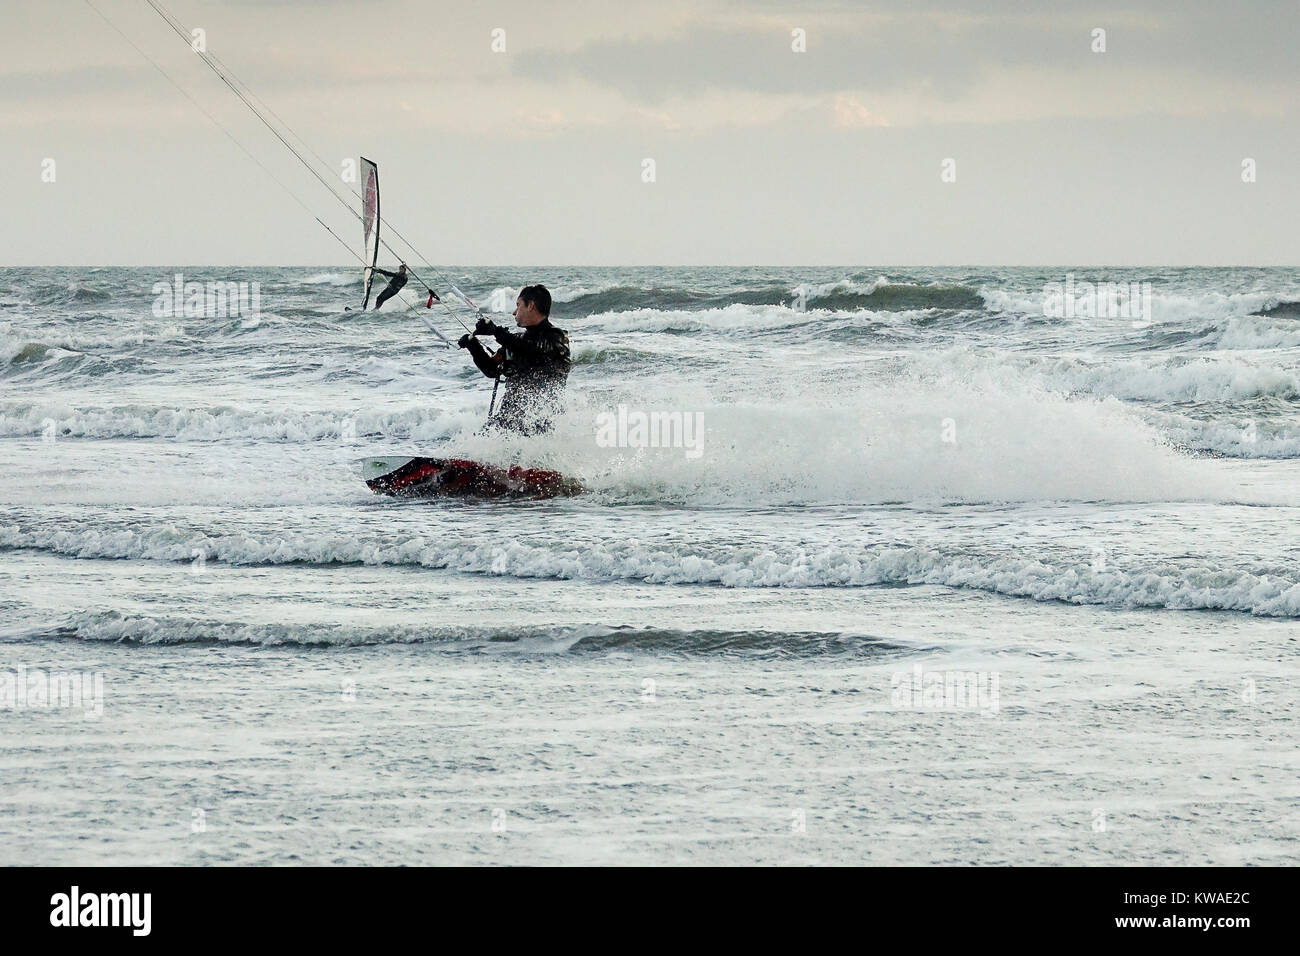 Bracklesham Bay, East Wittering. 01st January 2018. Strong winds along the south coast on the first day of 2018. - Stock Image